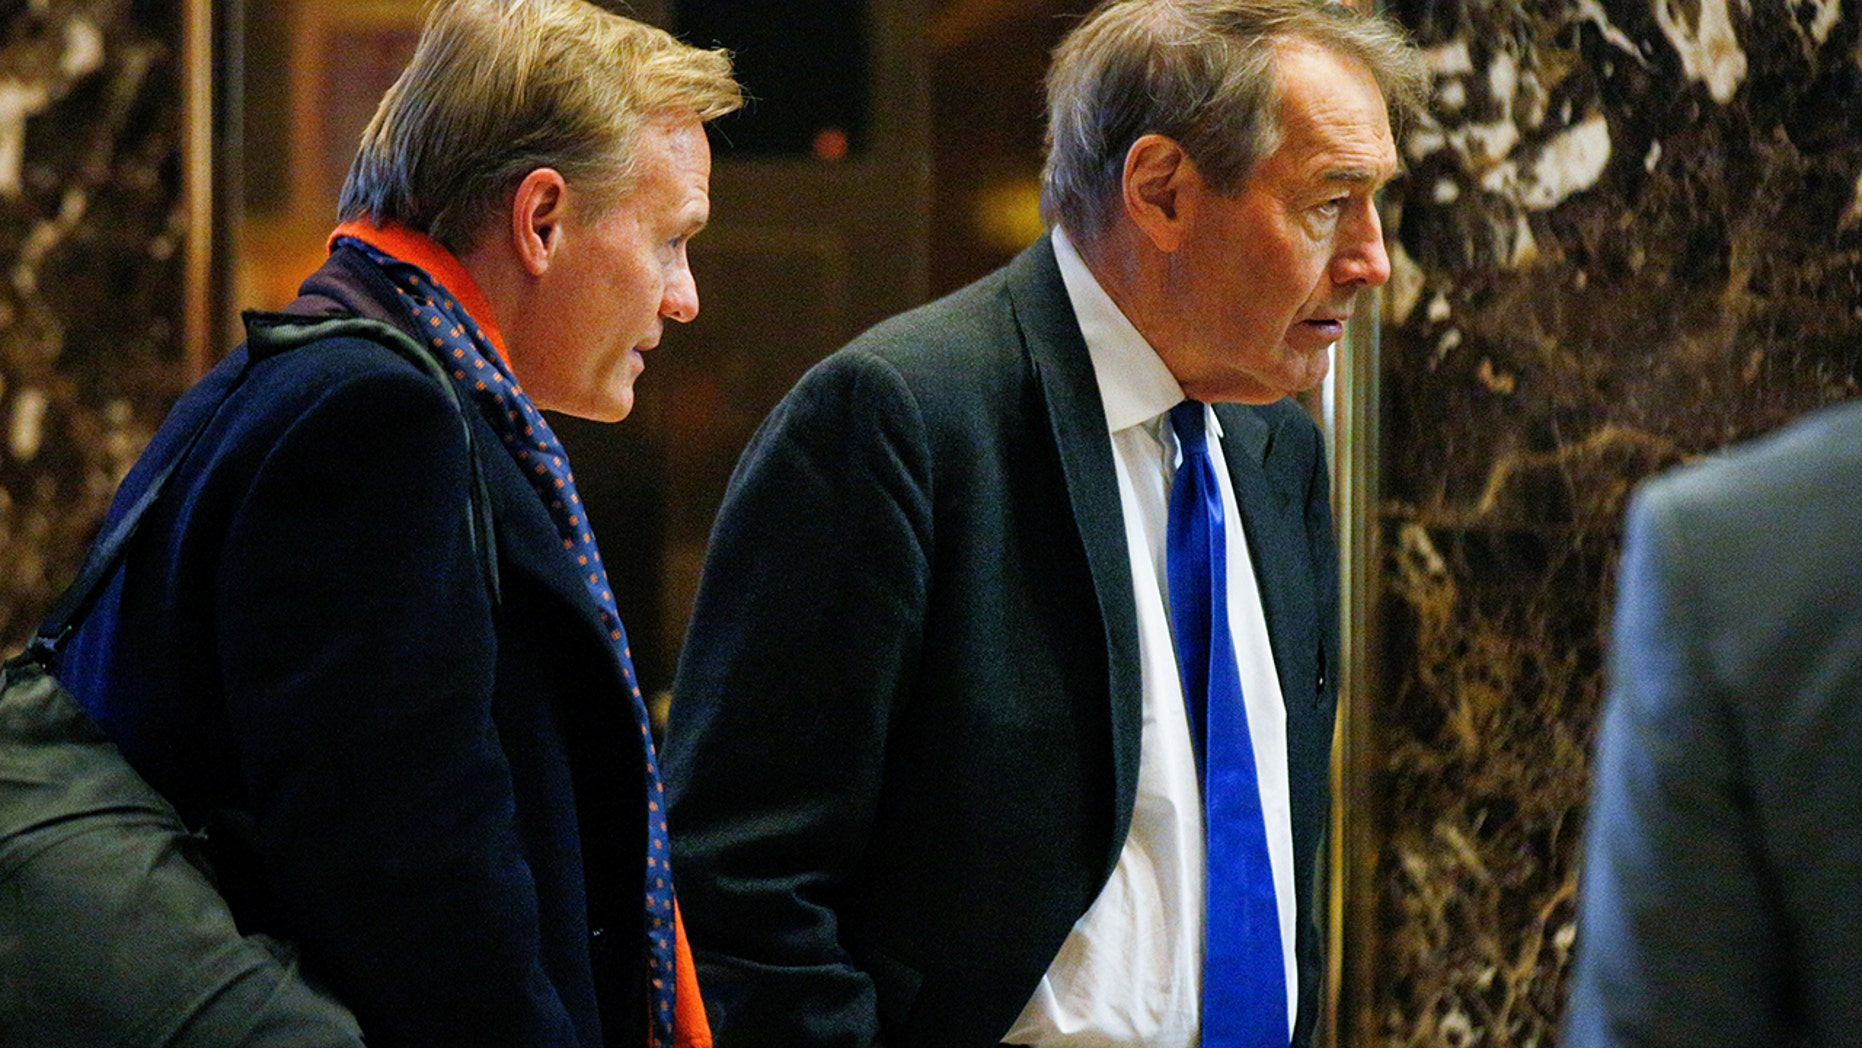 John Dickerson and Charlie Rose arrive to meet with U.S. President-elect Donald Trump at Trump Tower in Manhattan, New York City, Nov. 21, 2016.